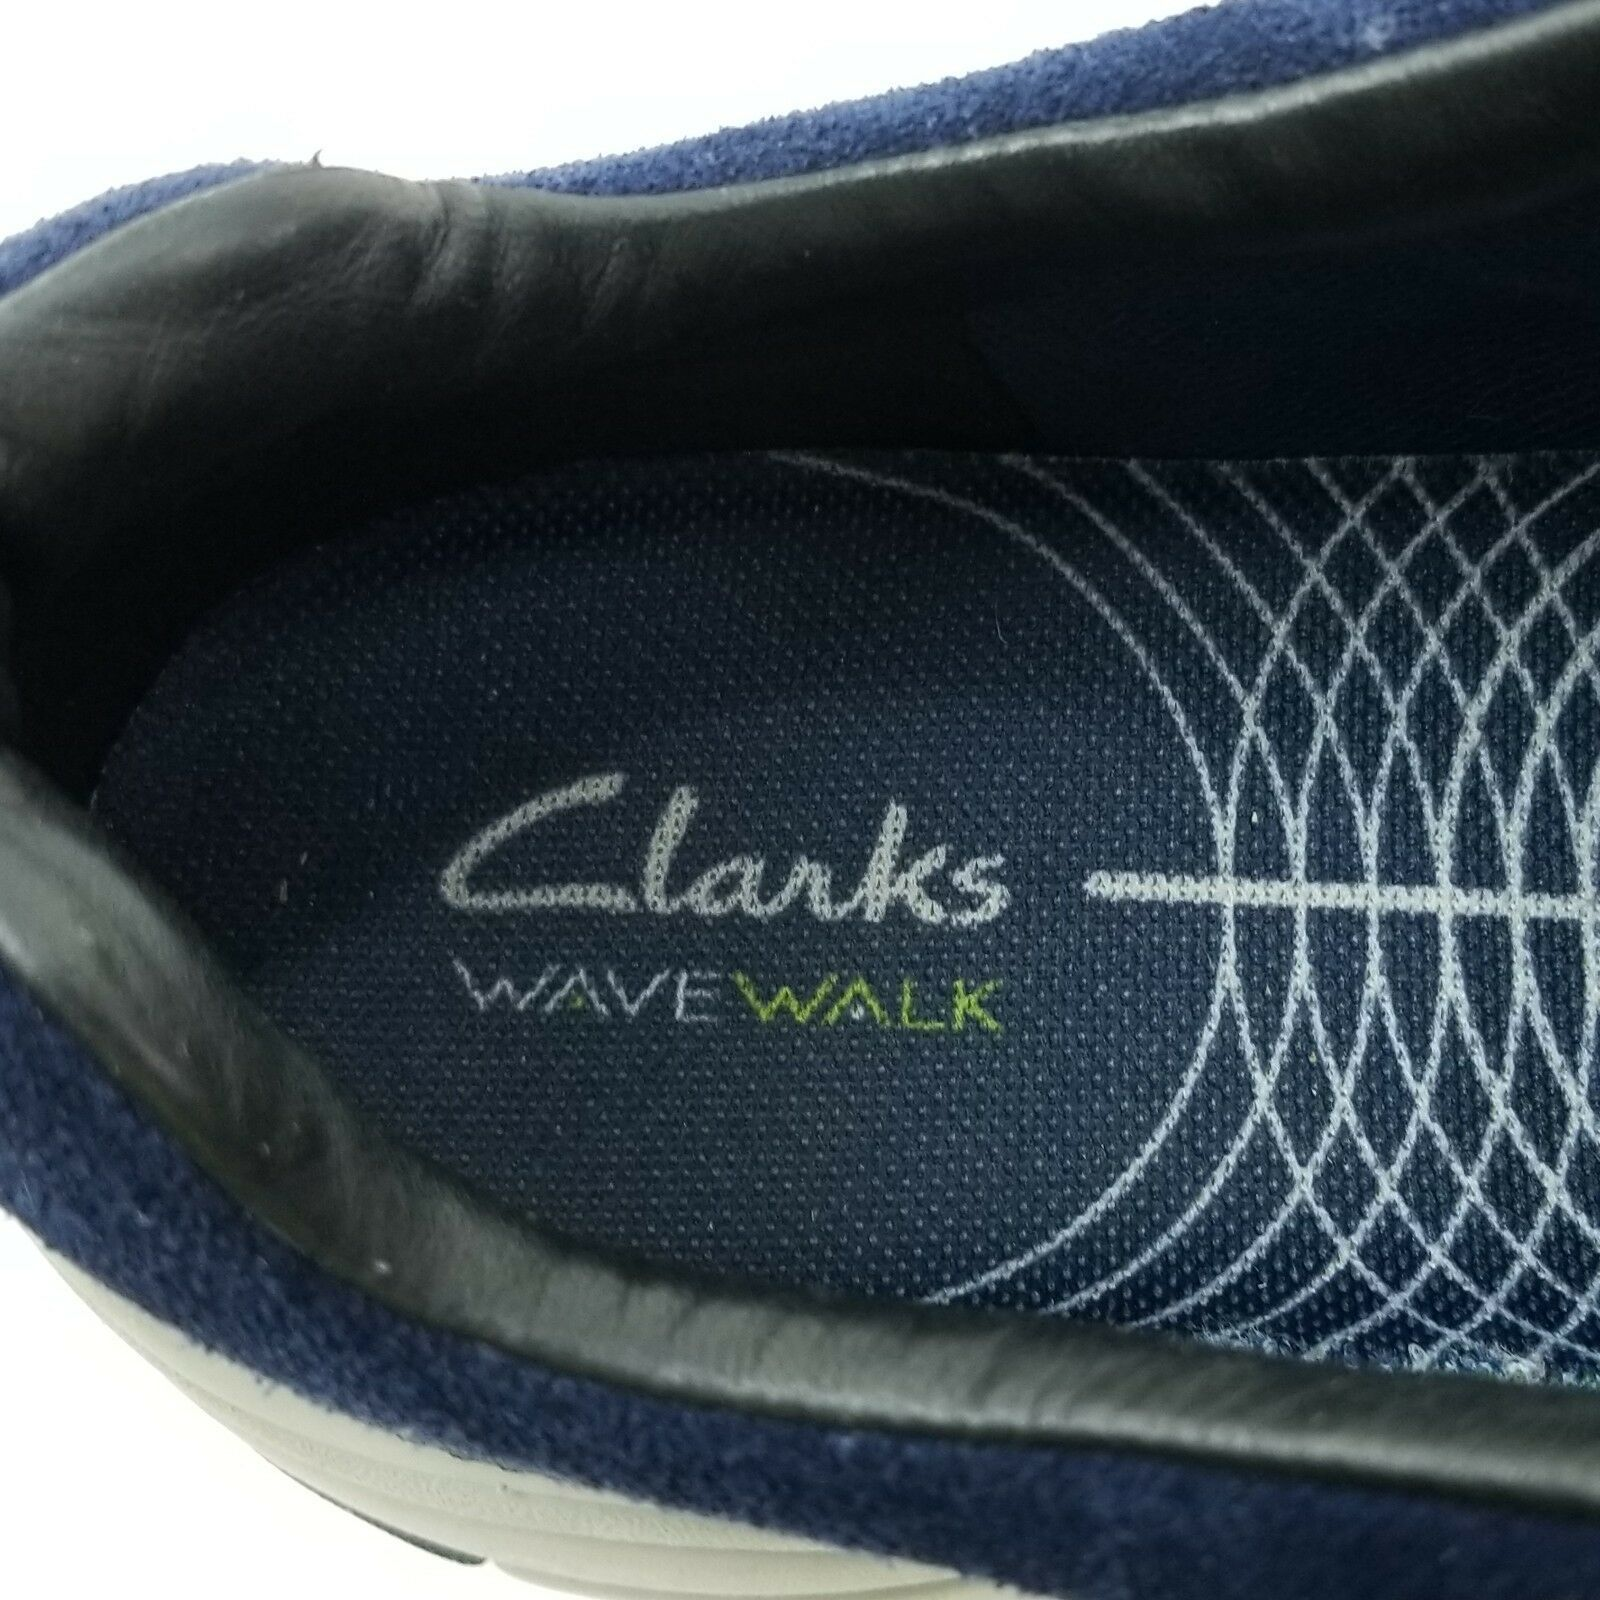 Clark's Outdoor Wave Walk Blue Waterproof Hiking Shoes 15990 Women's US 7 1/2